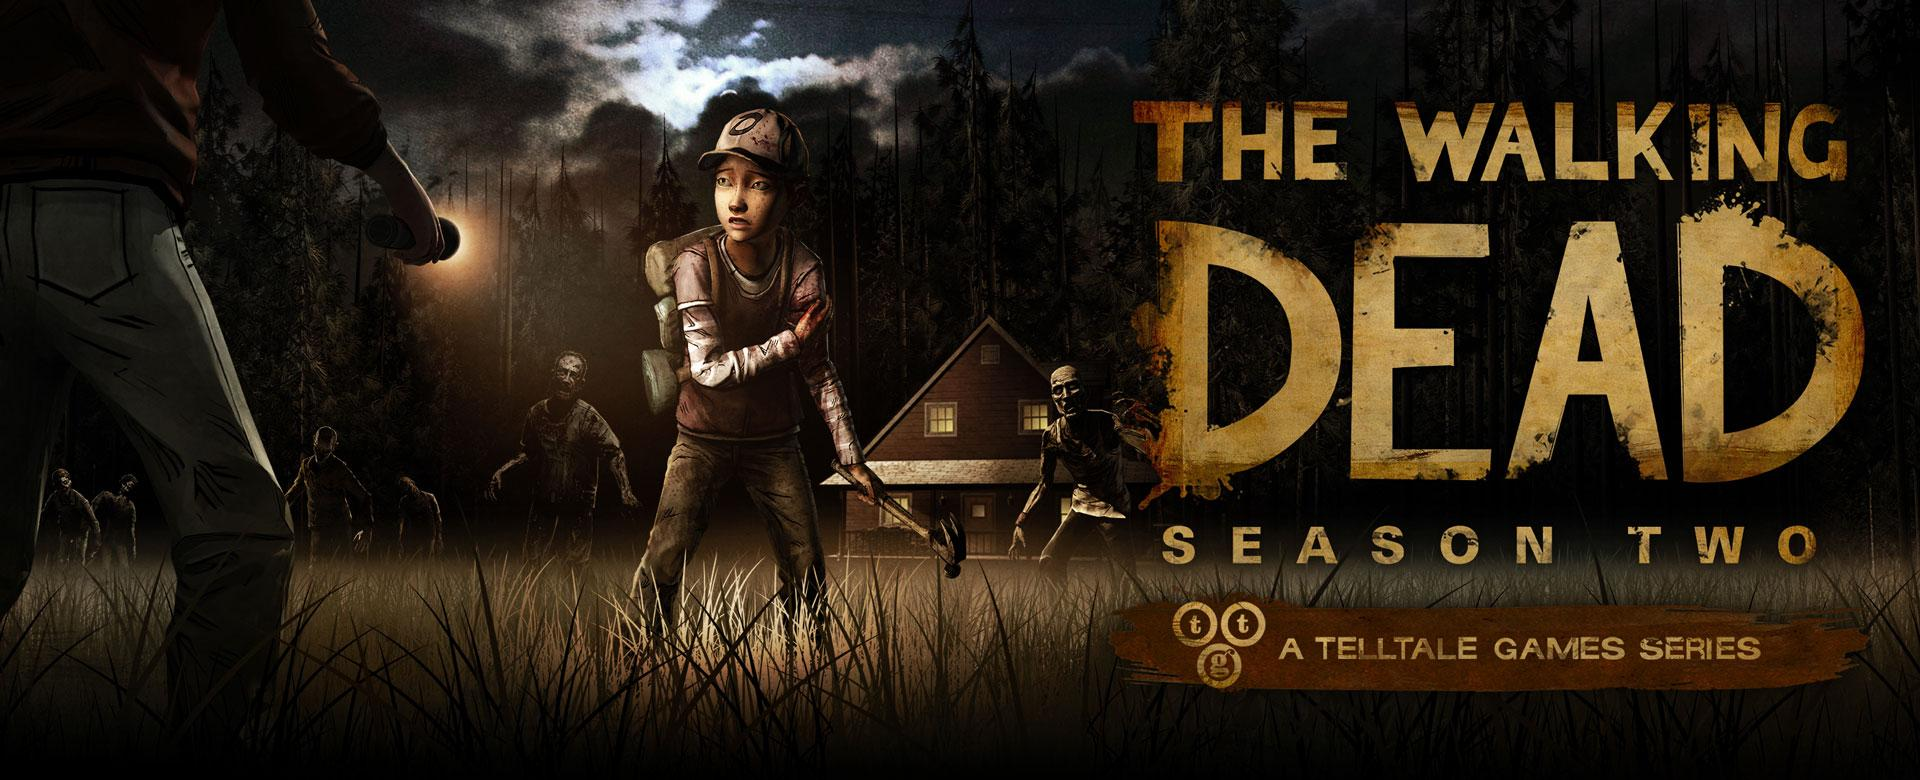 Recenze The Walking Dead Season Two : Epizoda 2 House Divided 7972